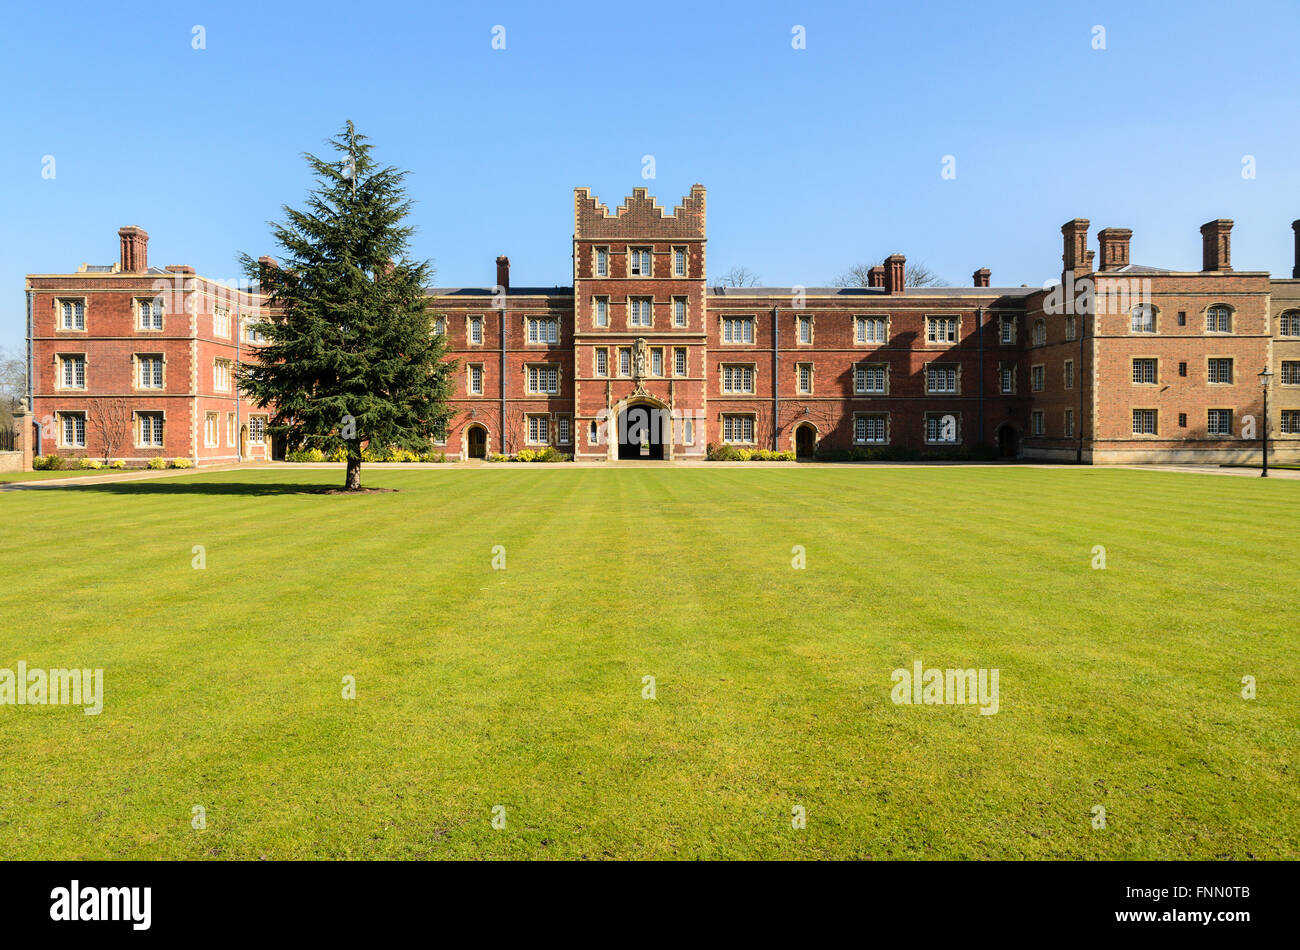 Jesus College, University of Cambridge, Cambridge, England, UK. Stock Photo